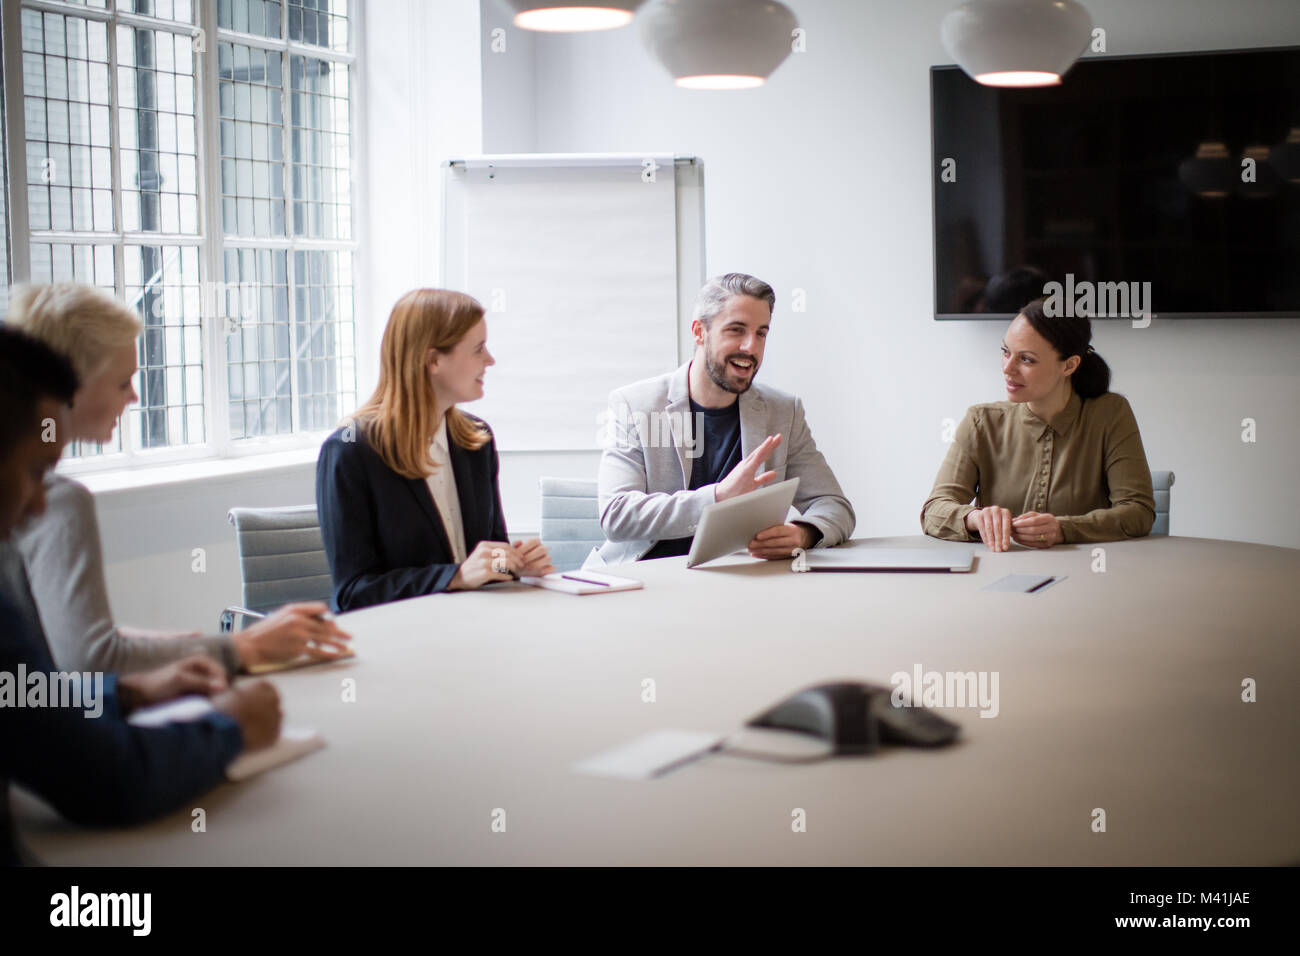 Male business executive leading a meeting - Stock Image